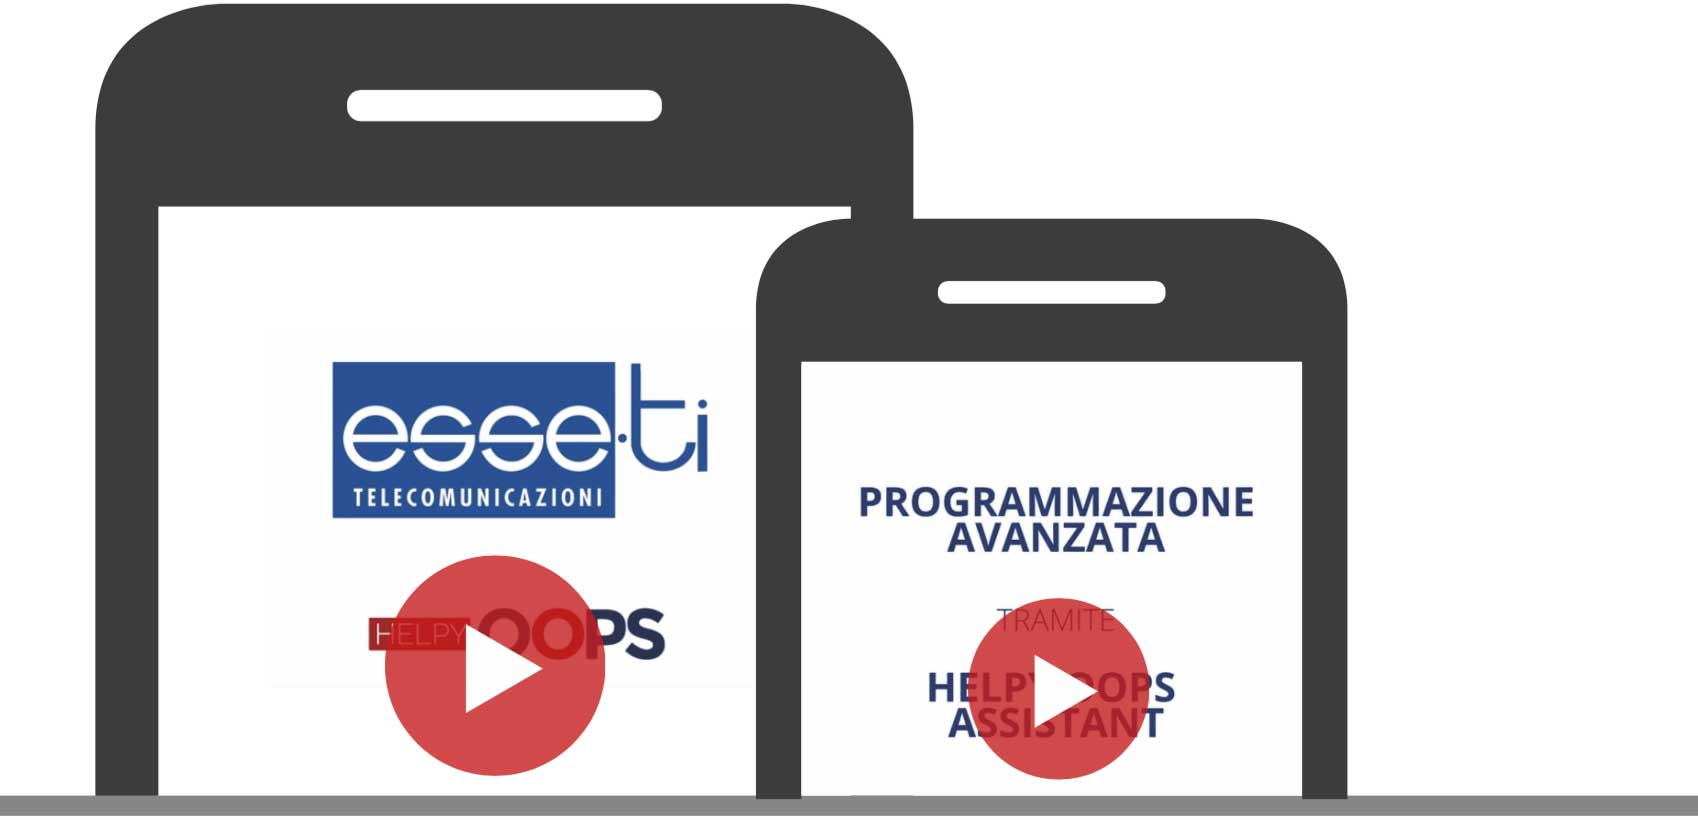 video telesoccorso gps per anziani Helpy Oops